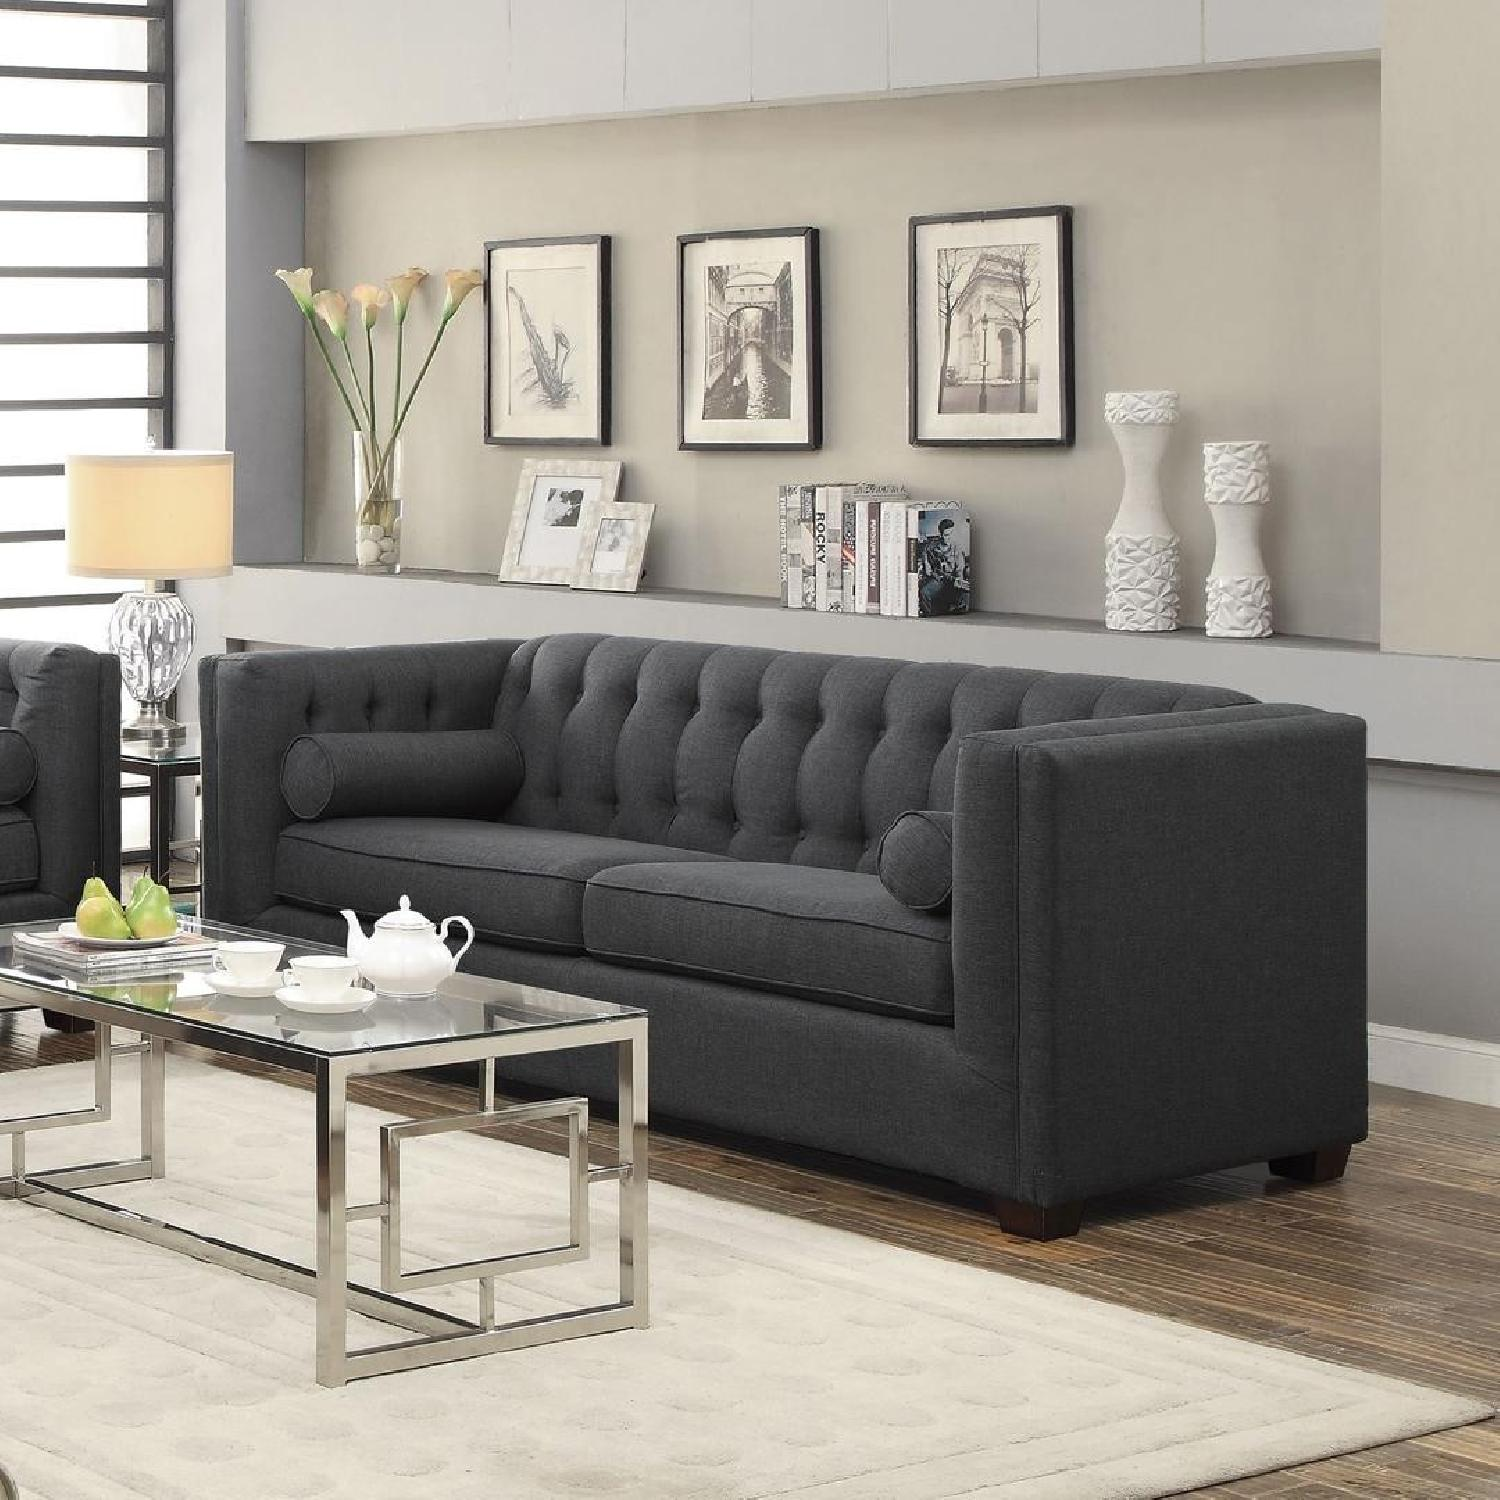 Charcoal Modern Tufted Sofa - AptDeco